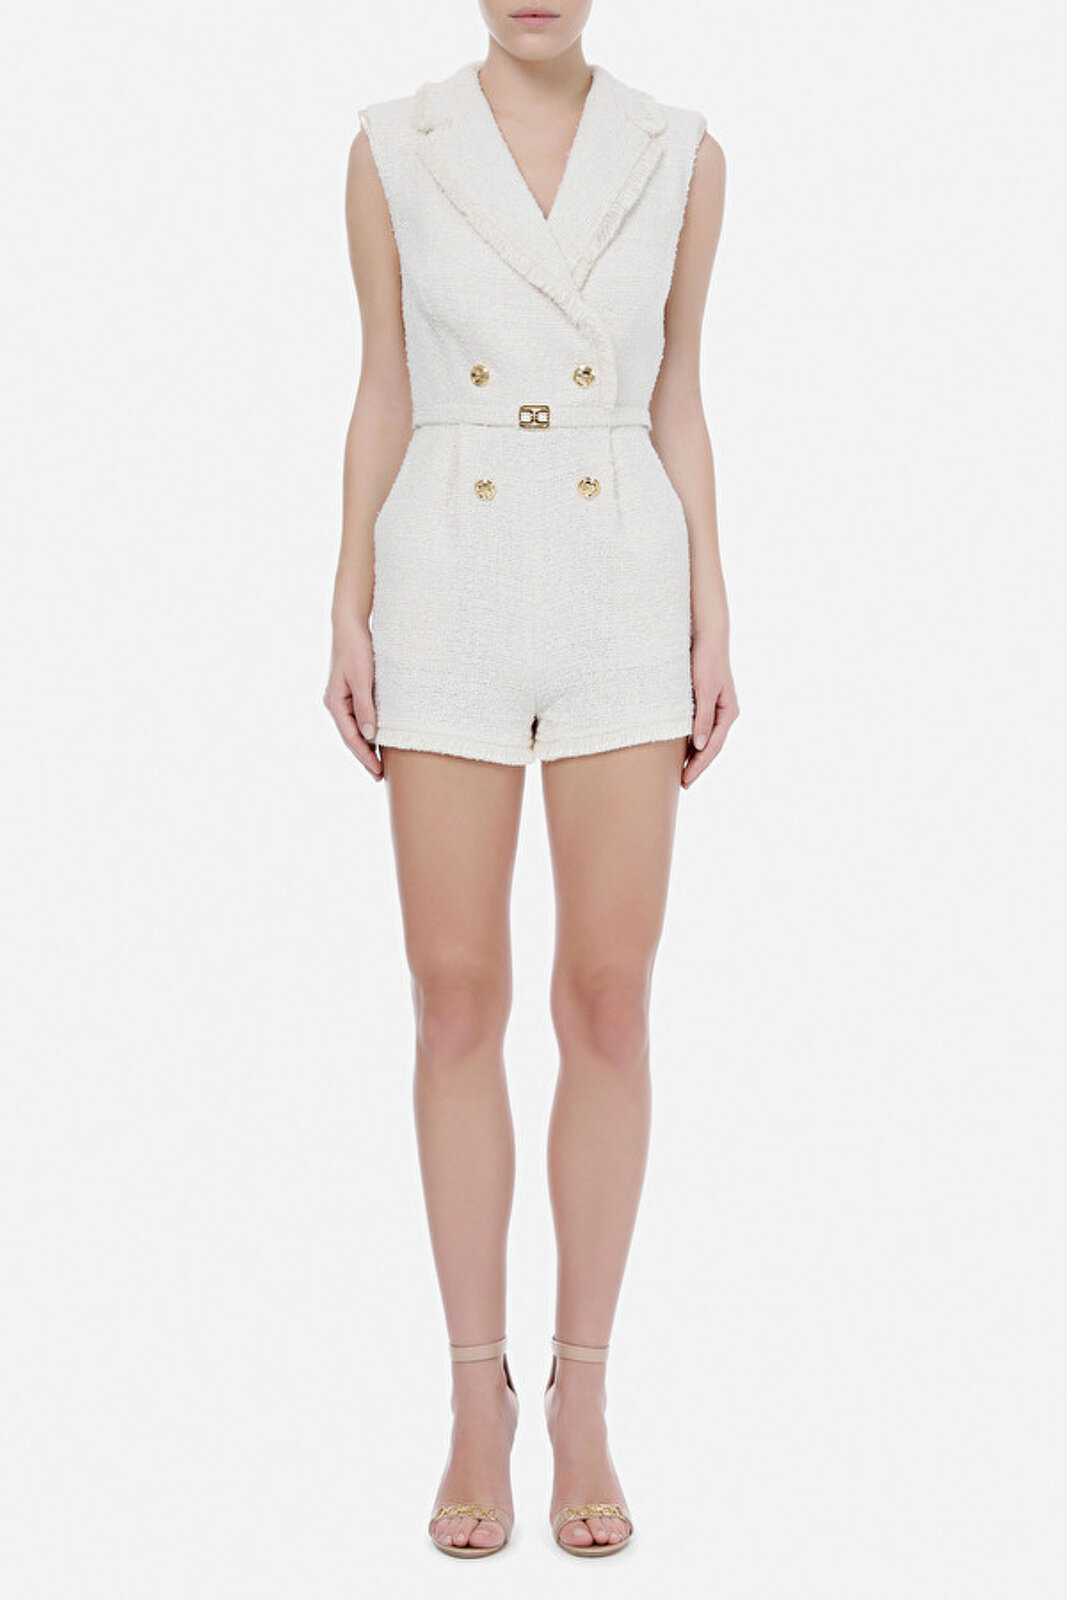 Short Suit In Tweed Elisabetta Franchi - Elisabetta Franchi